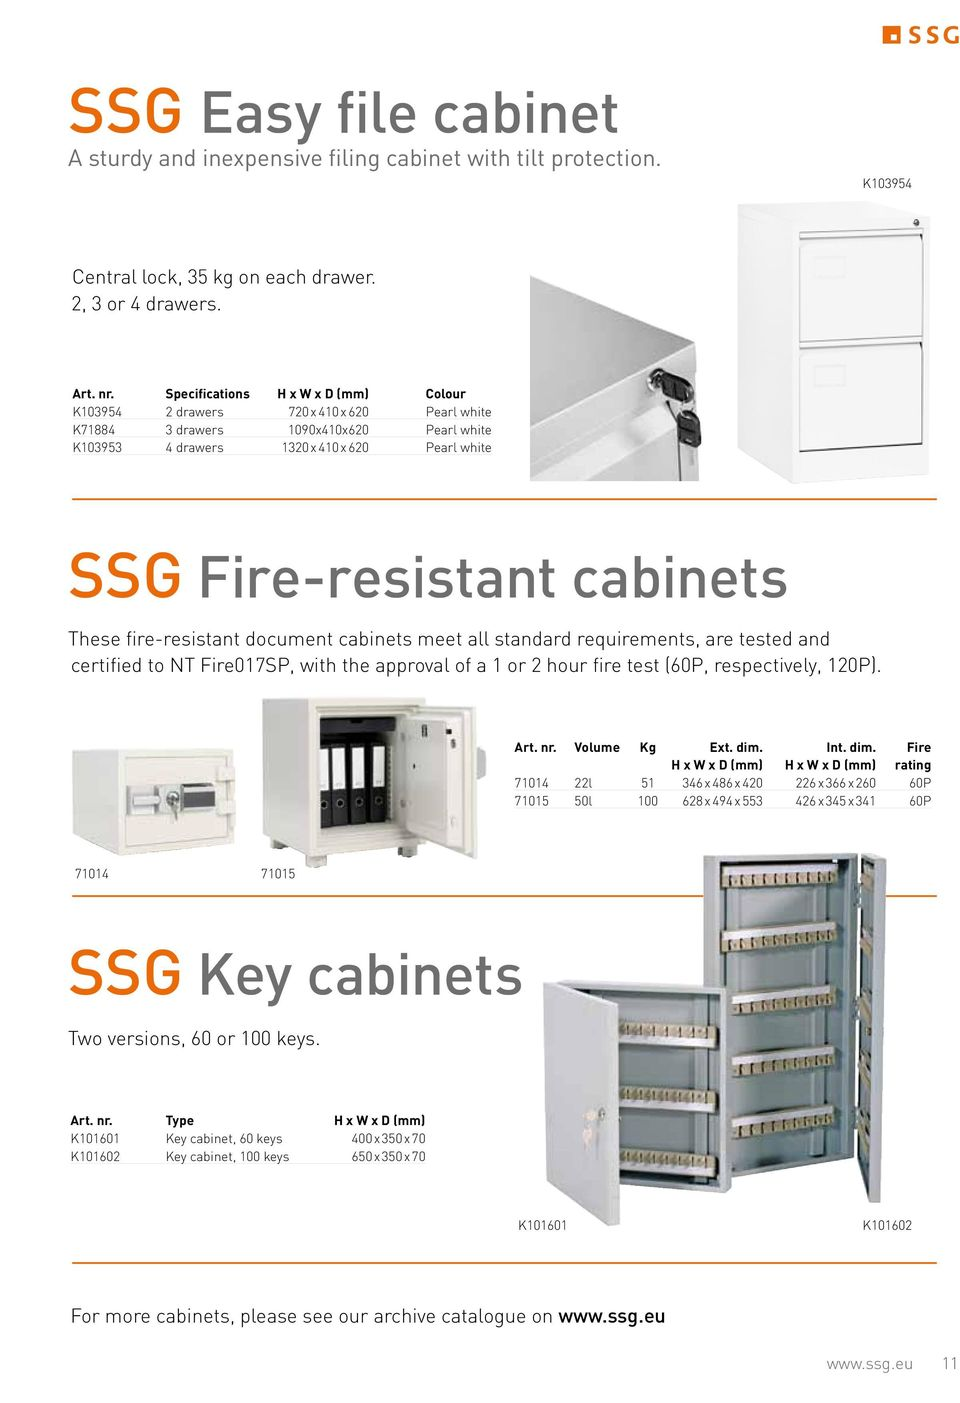 These fire-resistant document cabinets meet all standard requirements, are tested and certified to NT Fire017SP, with the approval of a 1 or 2 hour fire test (60P, respectively, 120P). Art. nr.